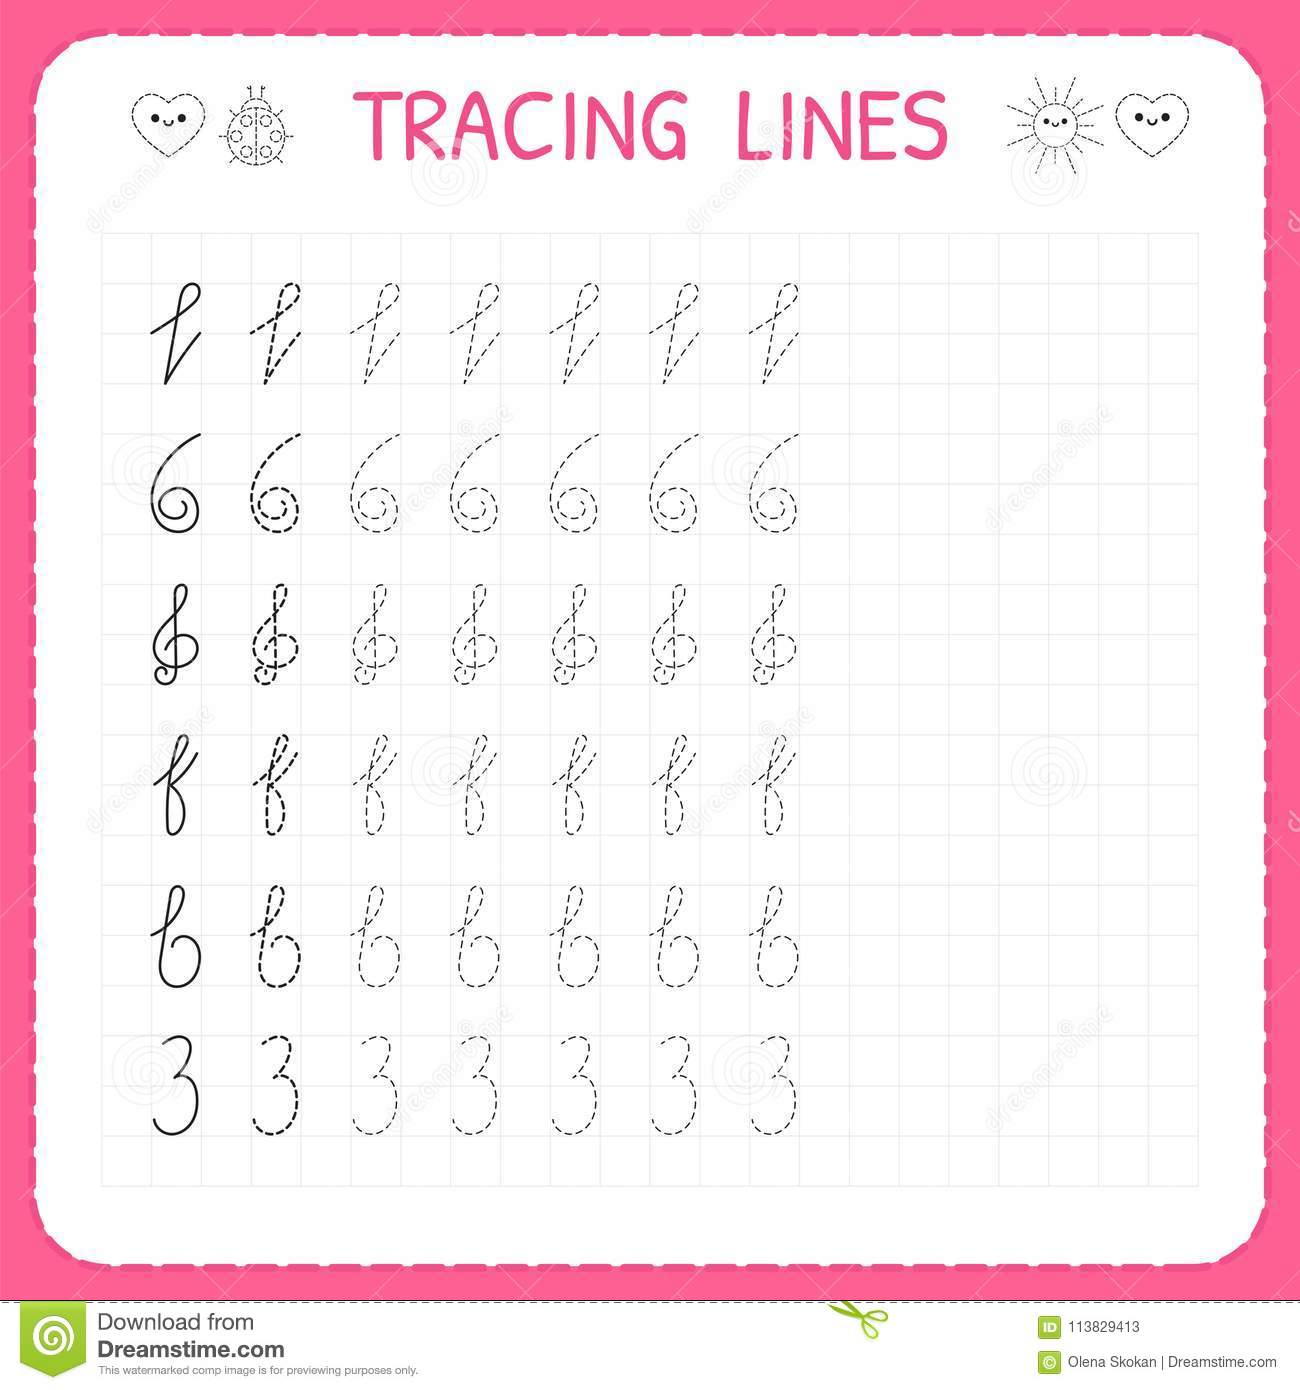 tracing lines worksheet for kids trace the pattern basic writing preschool or kindergarten. Black Bedroom Furniture Sets. Home Design Ideas